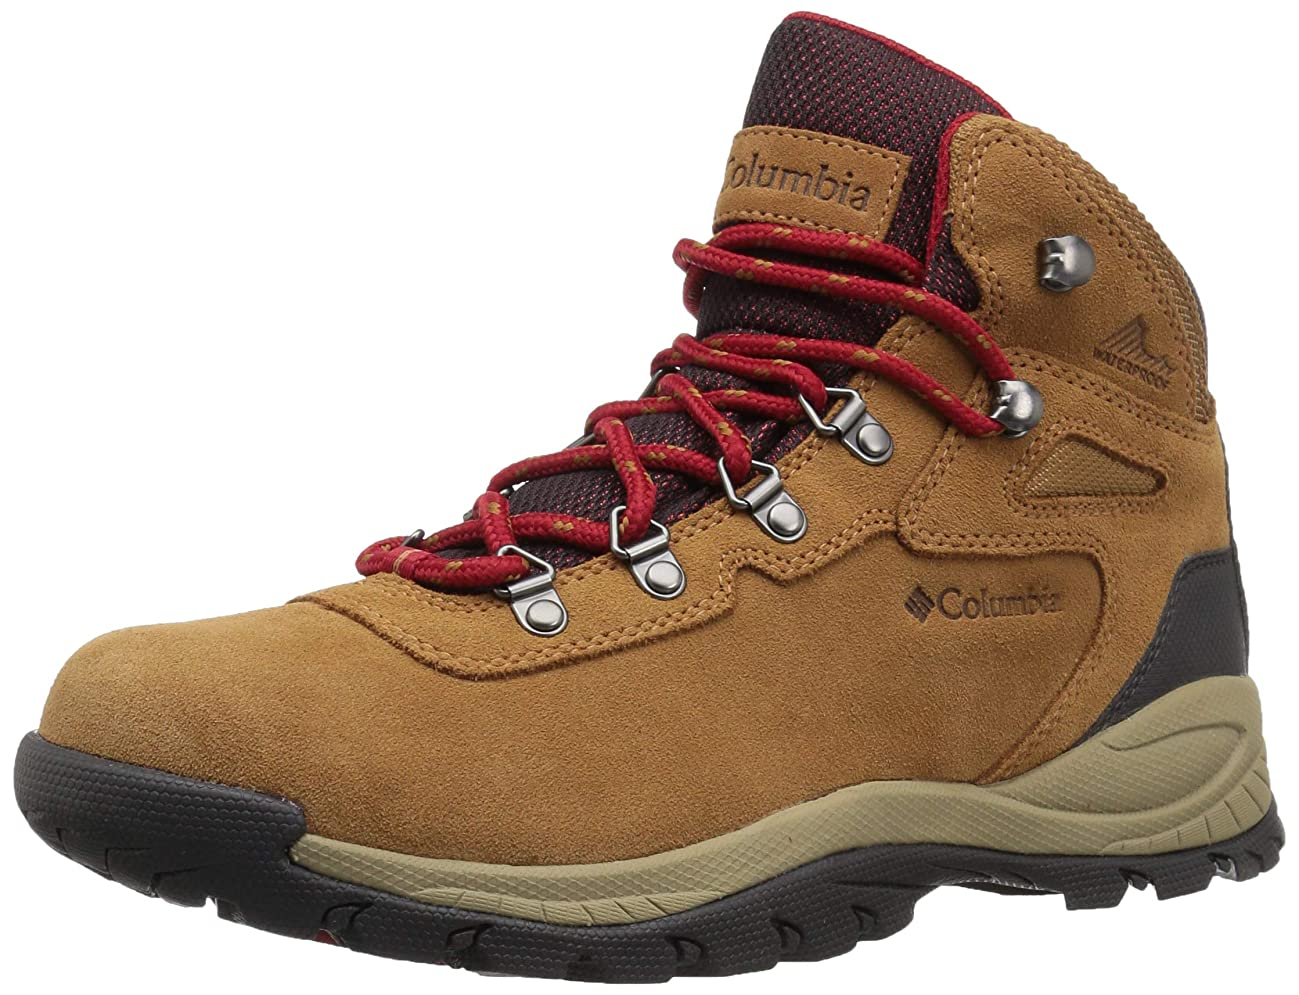 Columbia Women's Newton Ridge Plus Waterproof Amped Wide Boot, Ankle Support, High-Traction Grip